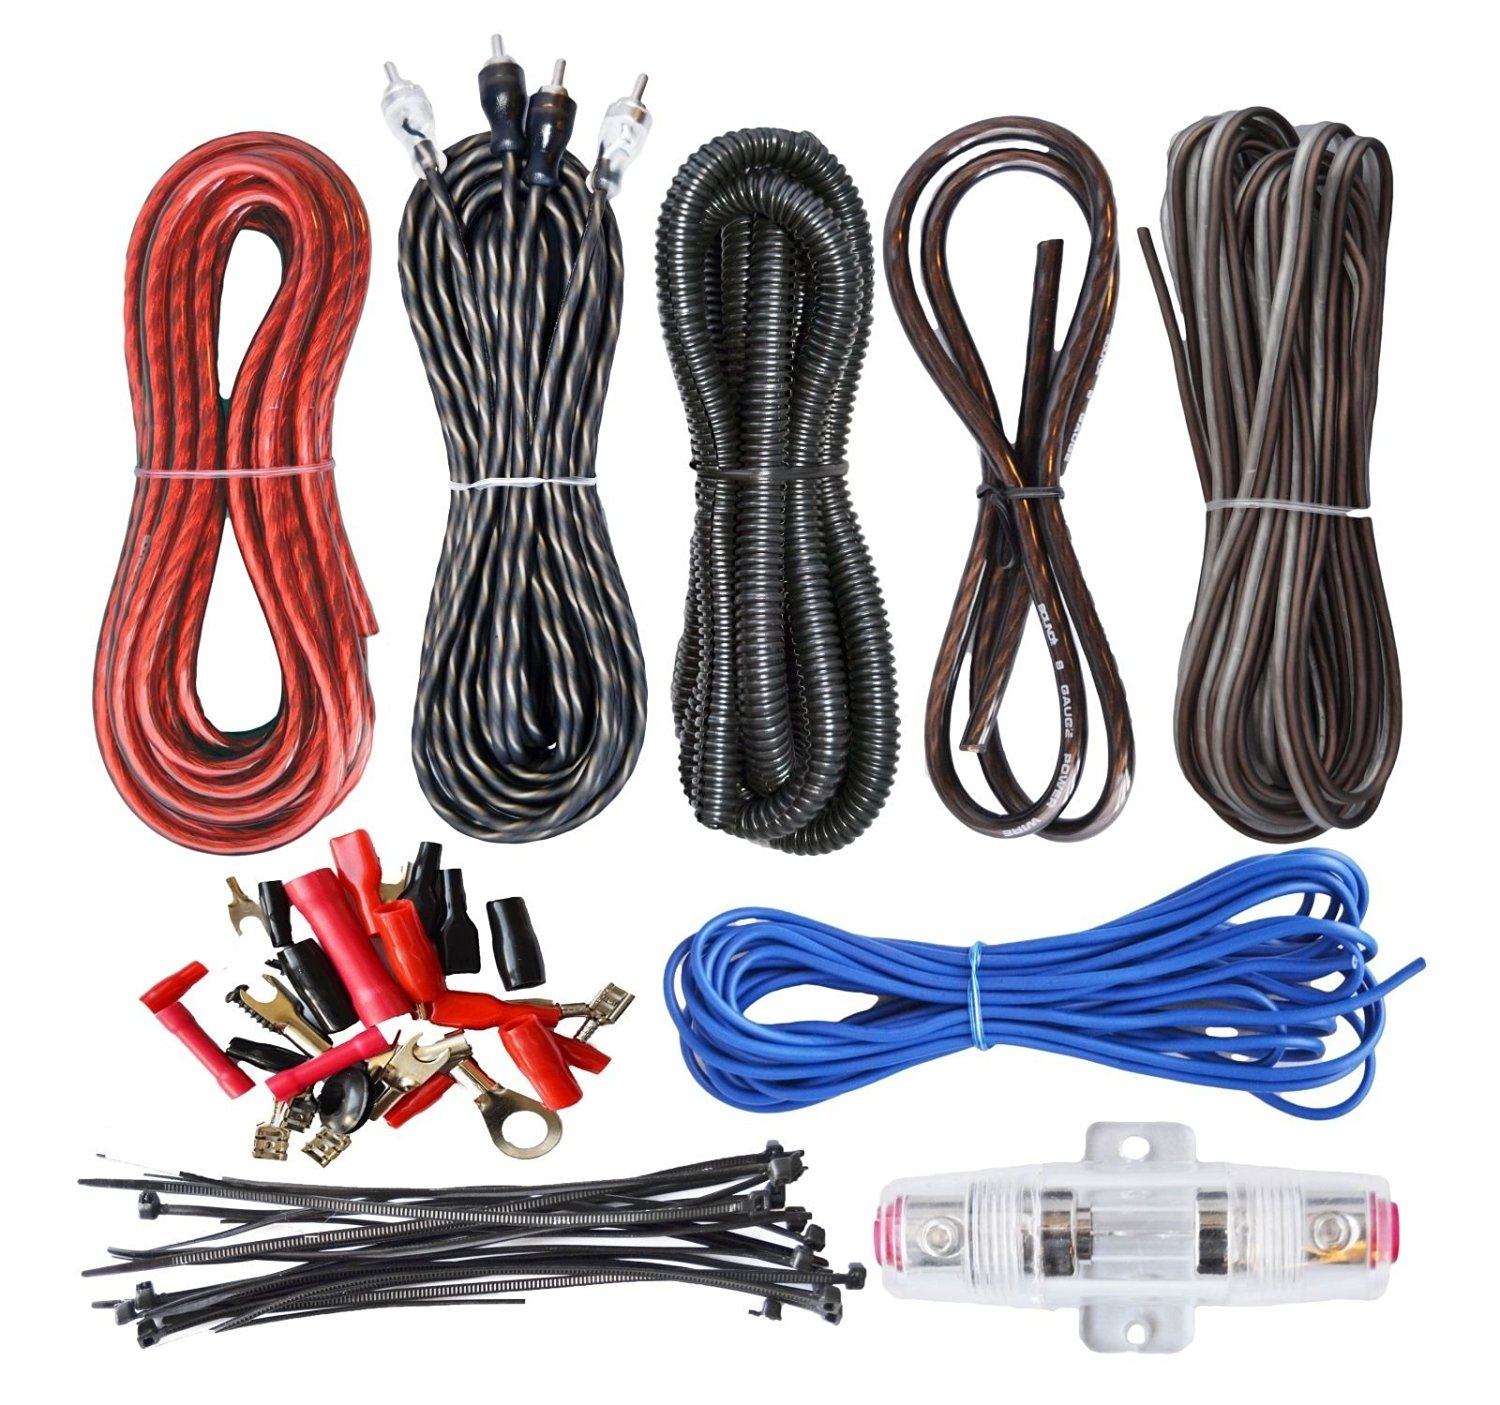 Buy 10 GAUGE AWG WIRE AMP KIT. CAR AUDIO AMPLIFIER INSTALLATION ...